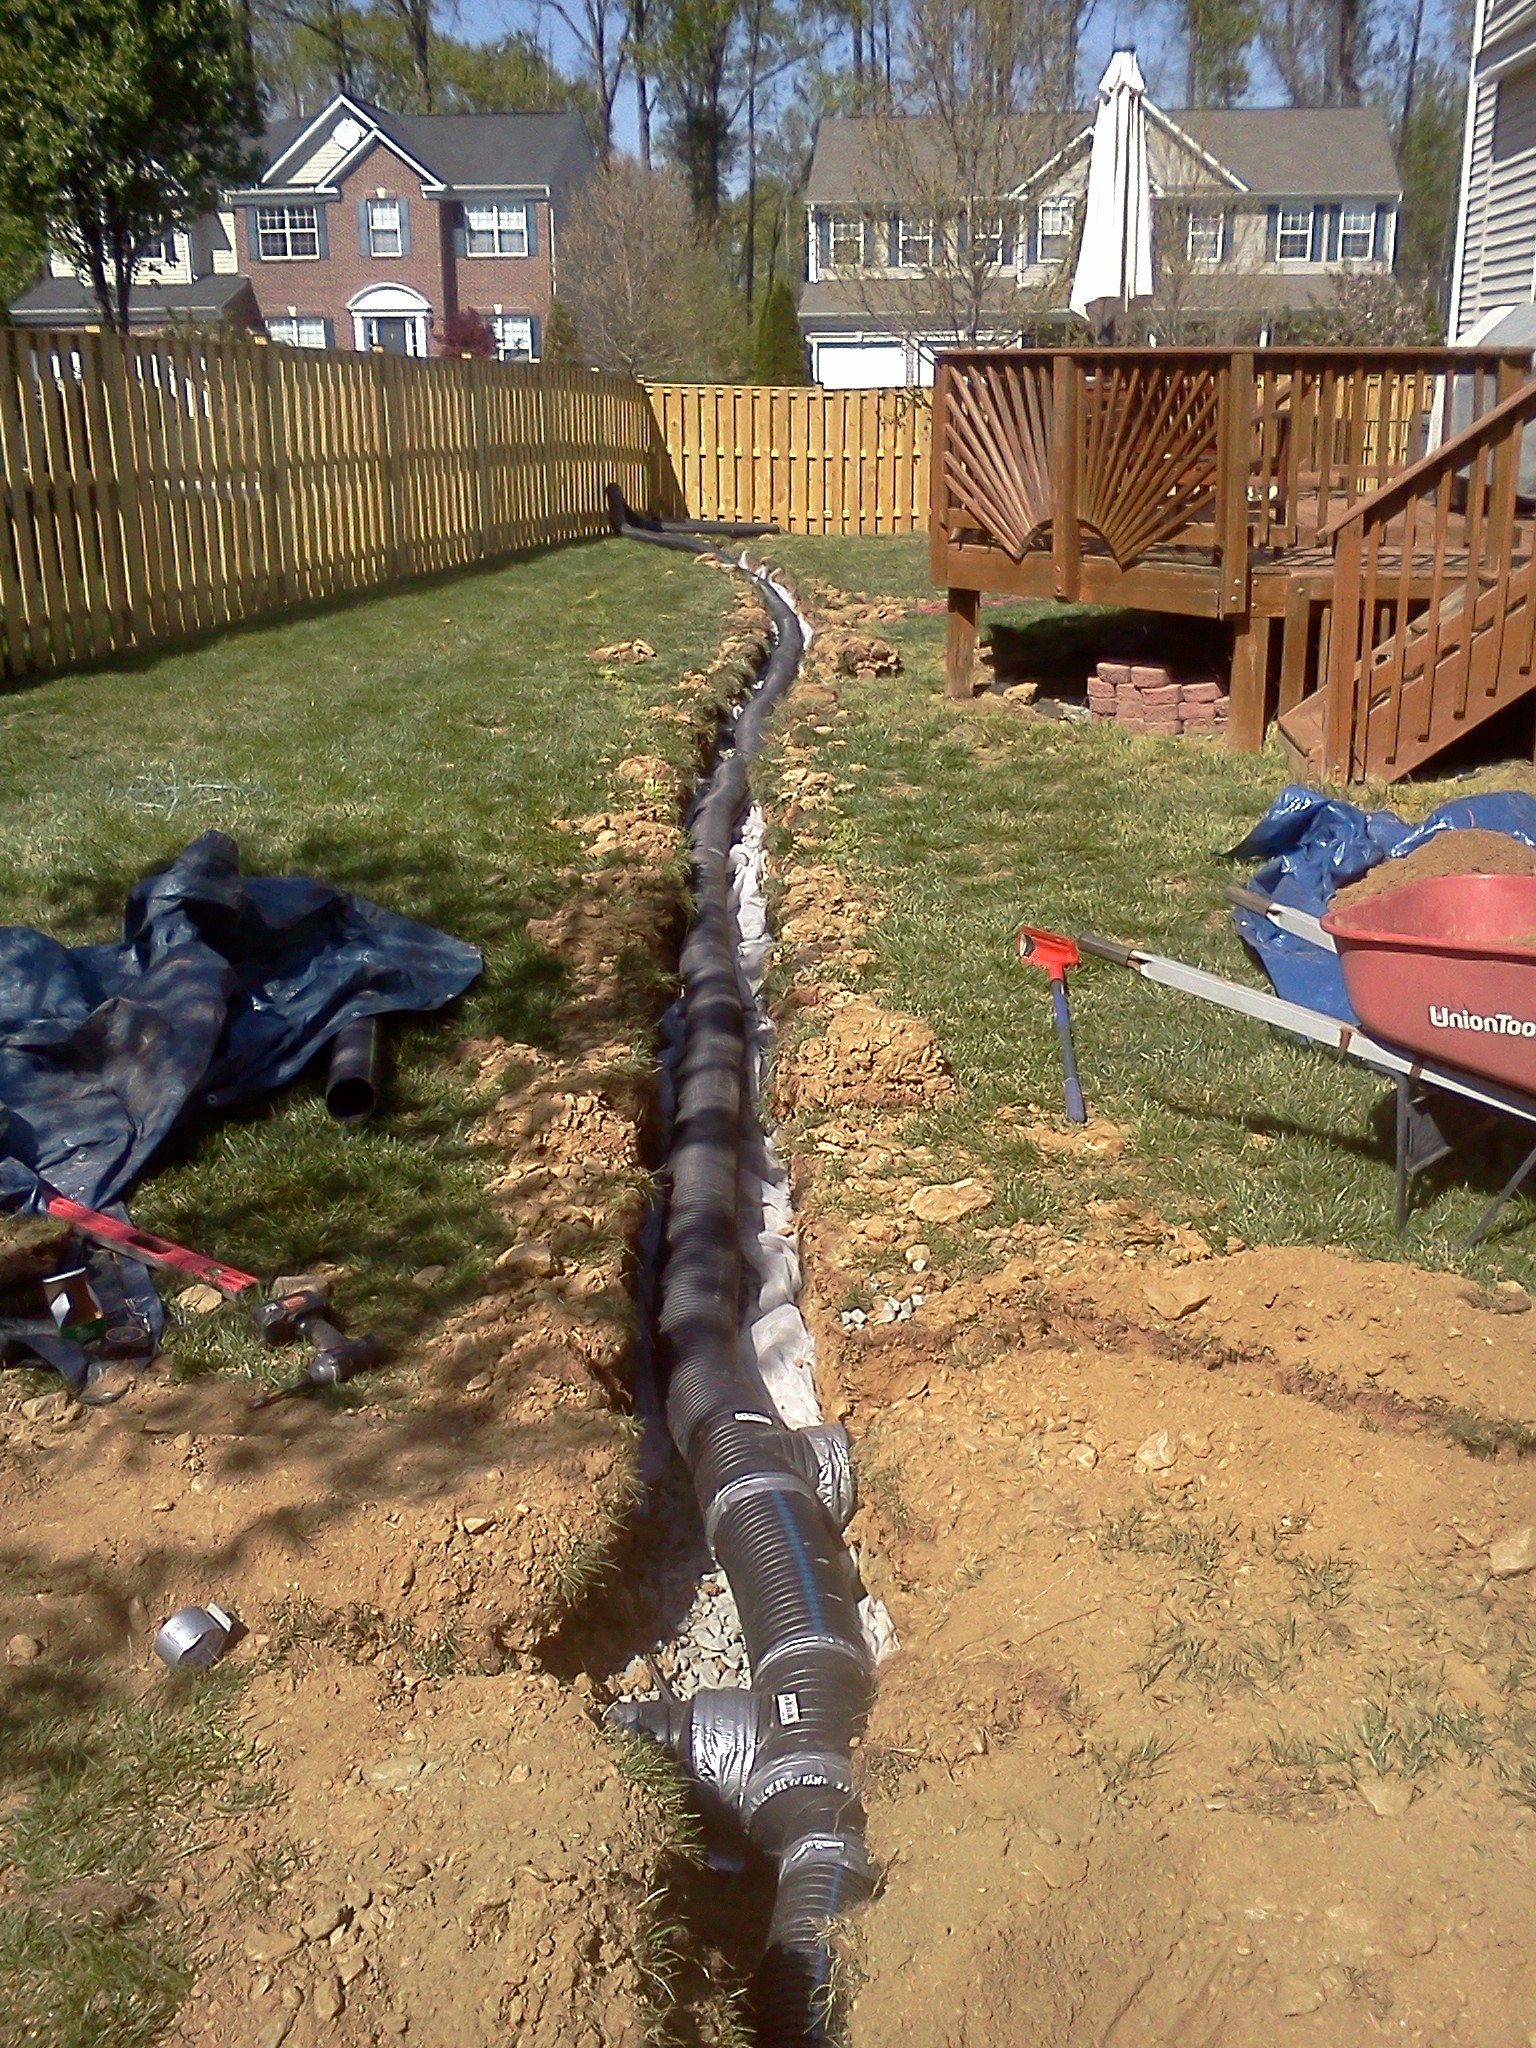 French Drain Contractor Northern Virginia Fairfax Yard Drainage Cost Design Diagram How To A Or Lawn Drains Es Enterprise